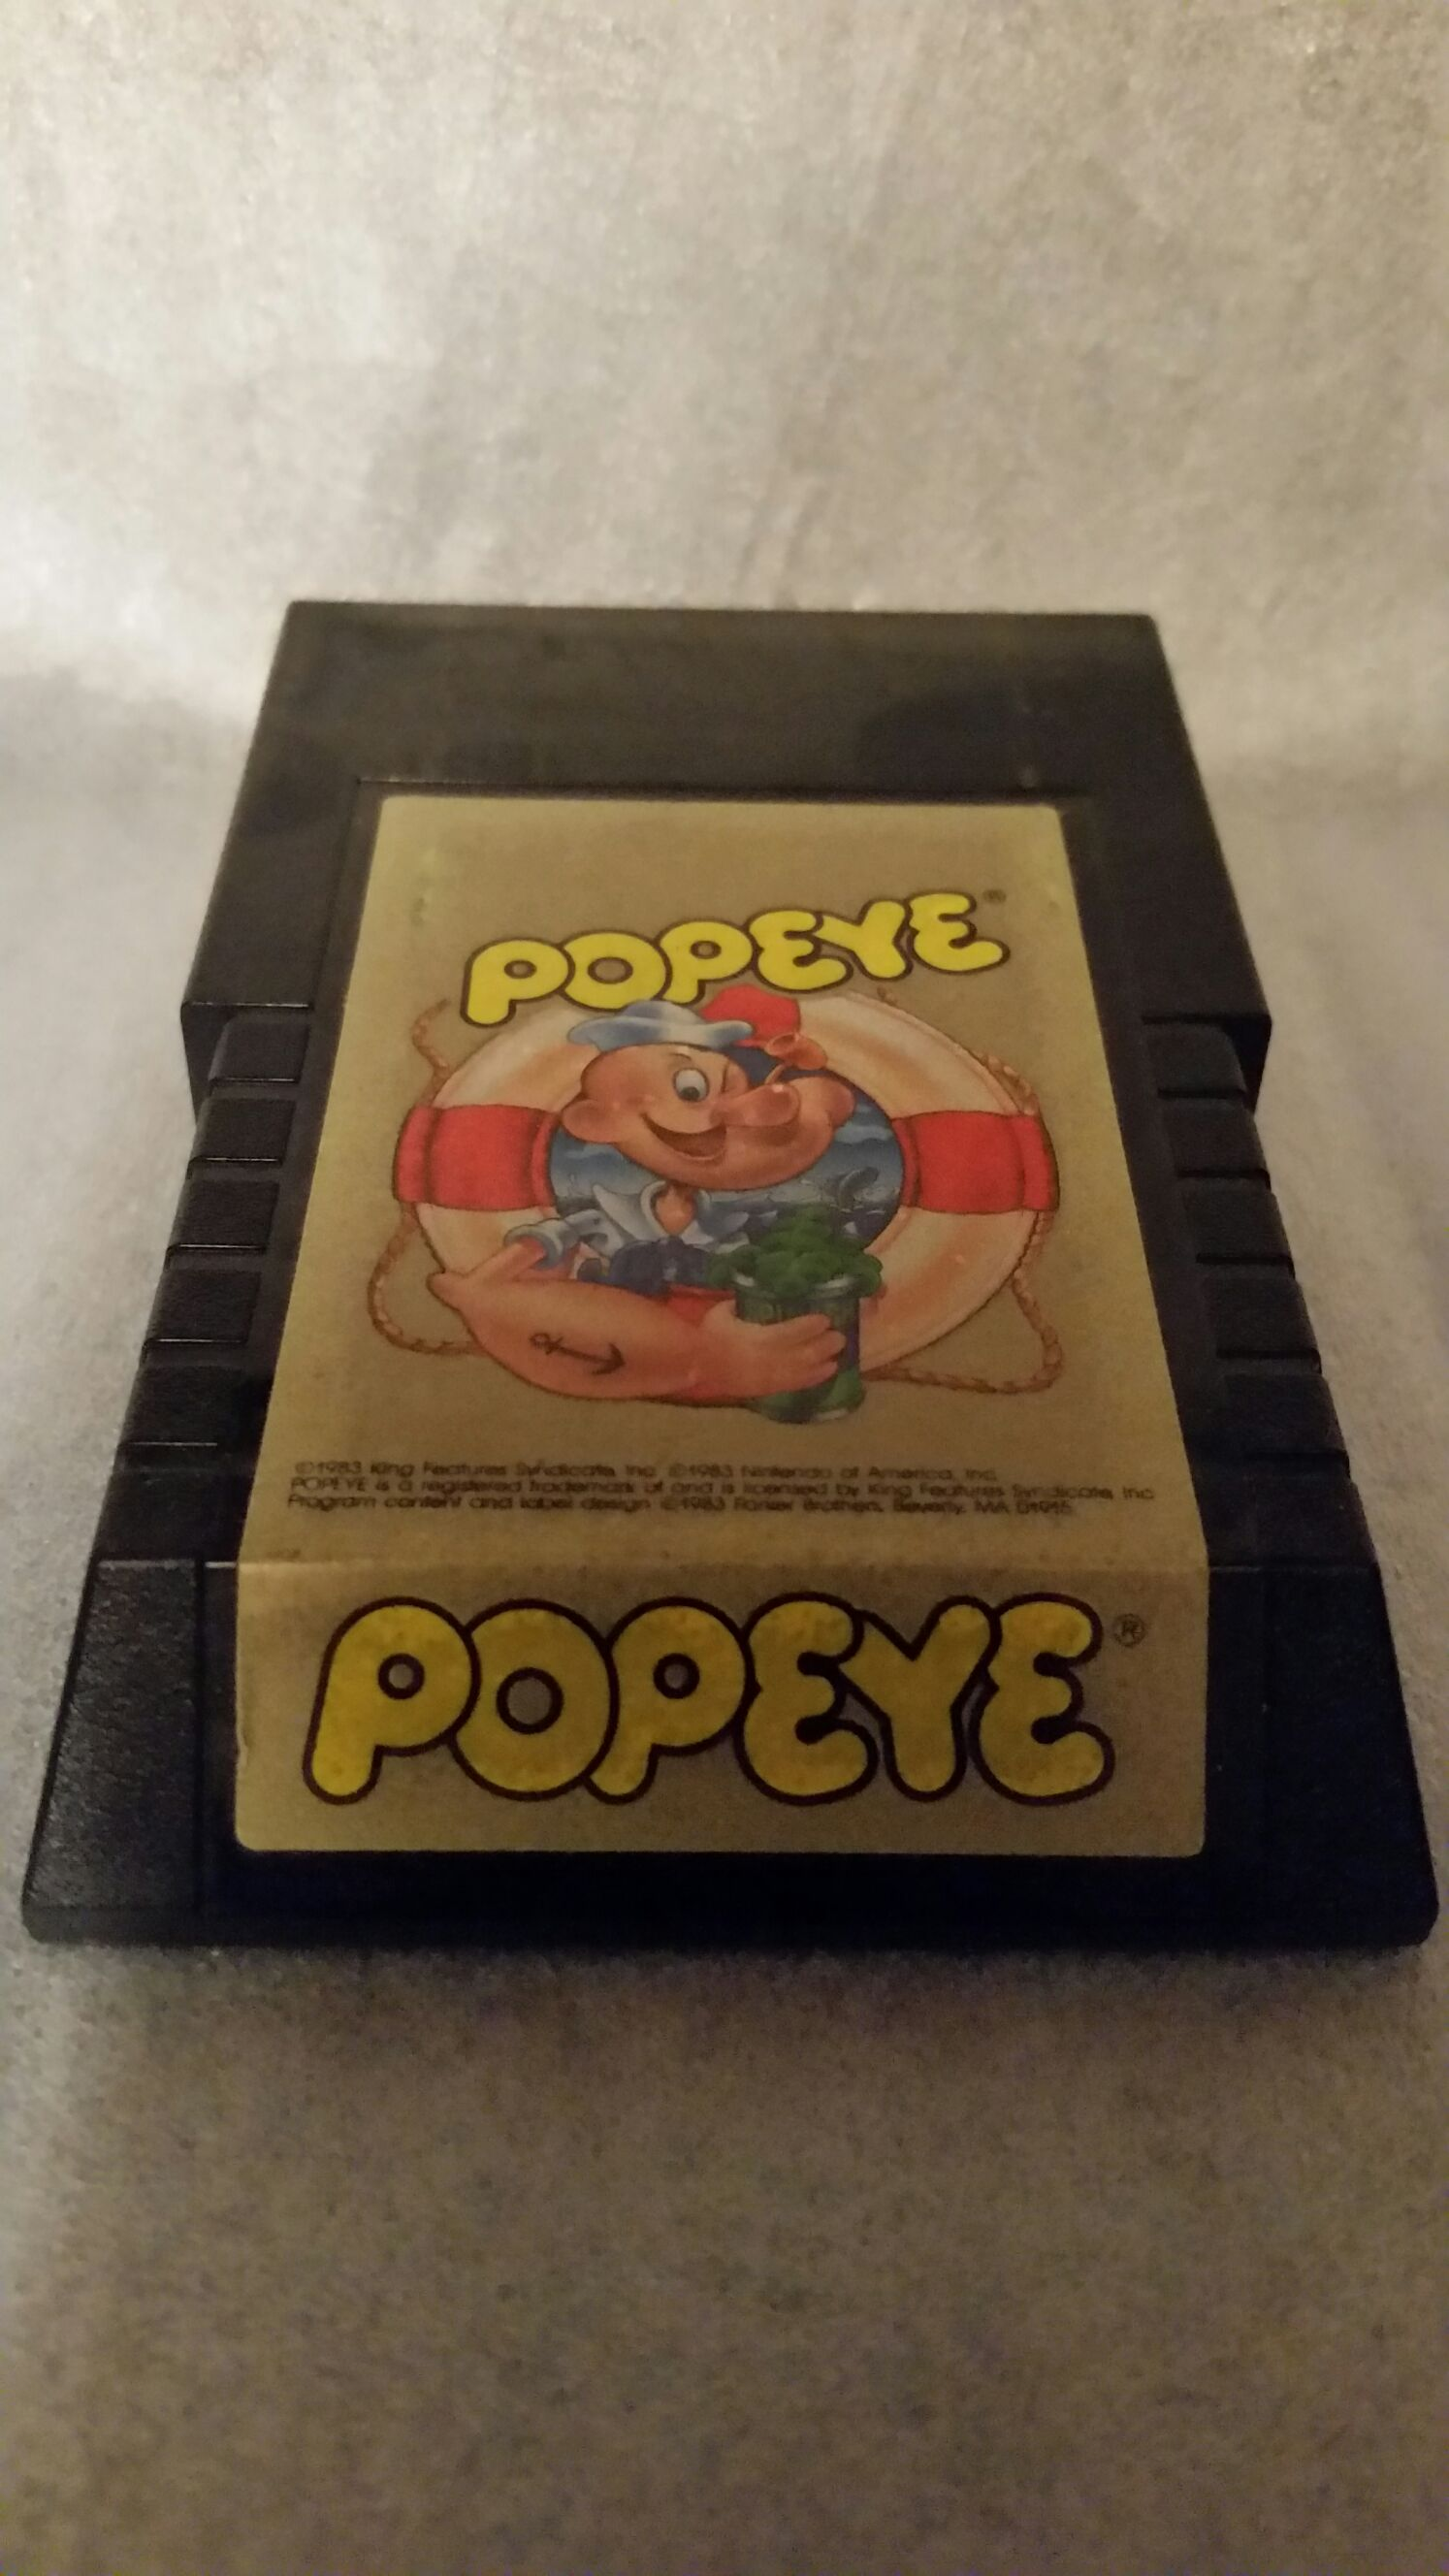 Popeye - Intelivision cover